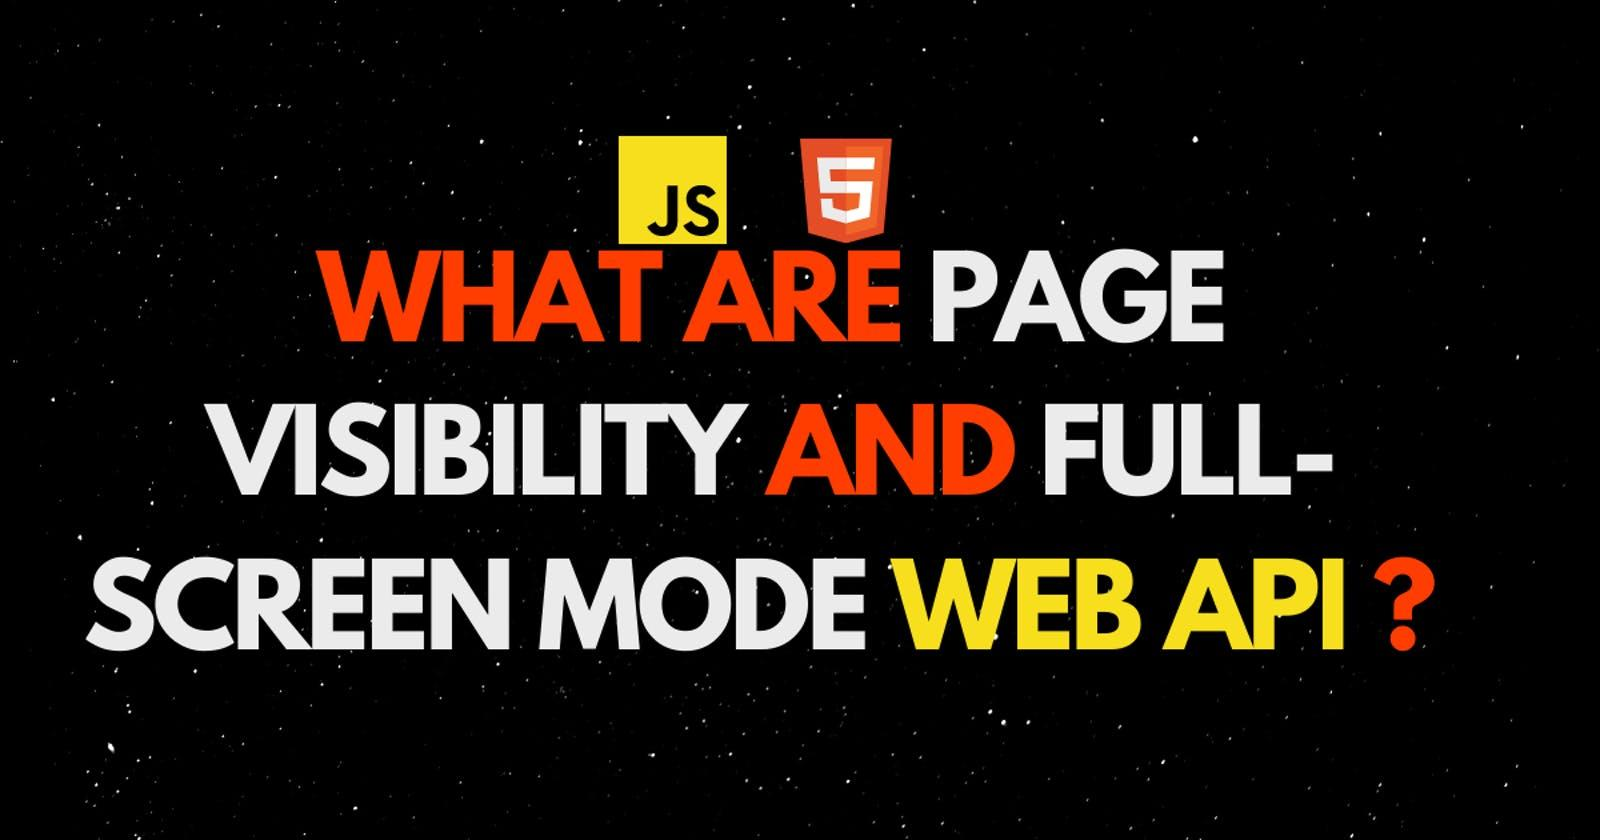 Page visibility and full-screen mode WEB API  | Web Development for Beginners